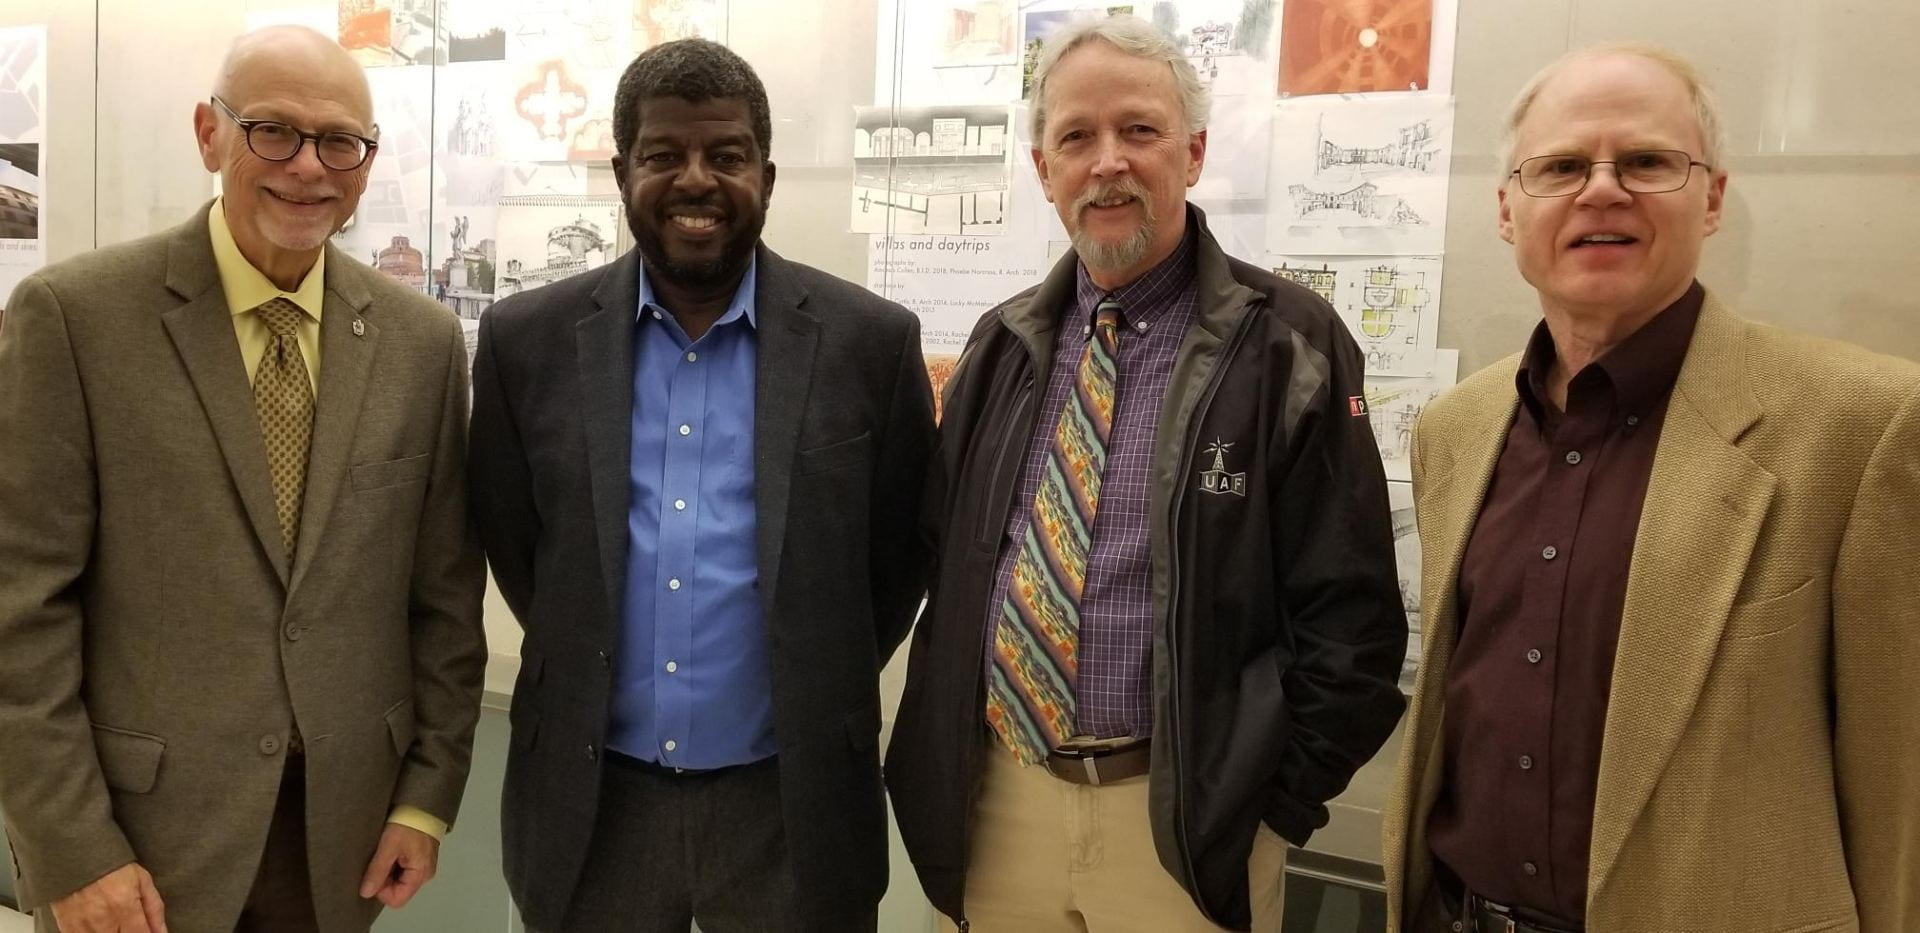 University of Arkansas Chancellor Joseph Steinmetz, left, was among attendees. Also pictured are VDP Holmes, Director-KUAF Rick Stockdell and journalism lecturer David Edmark.